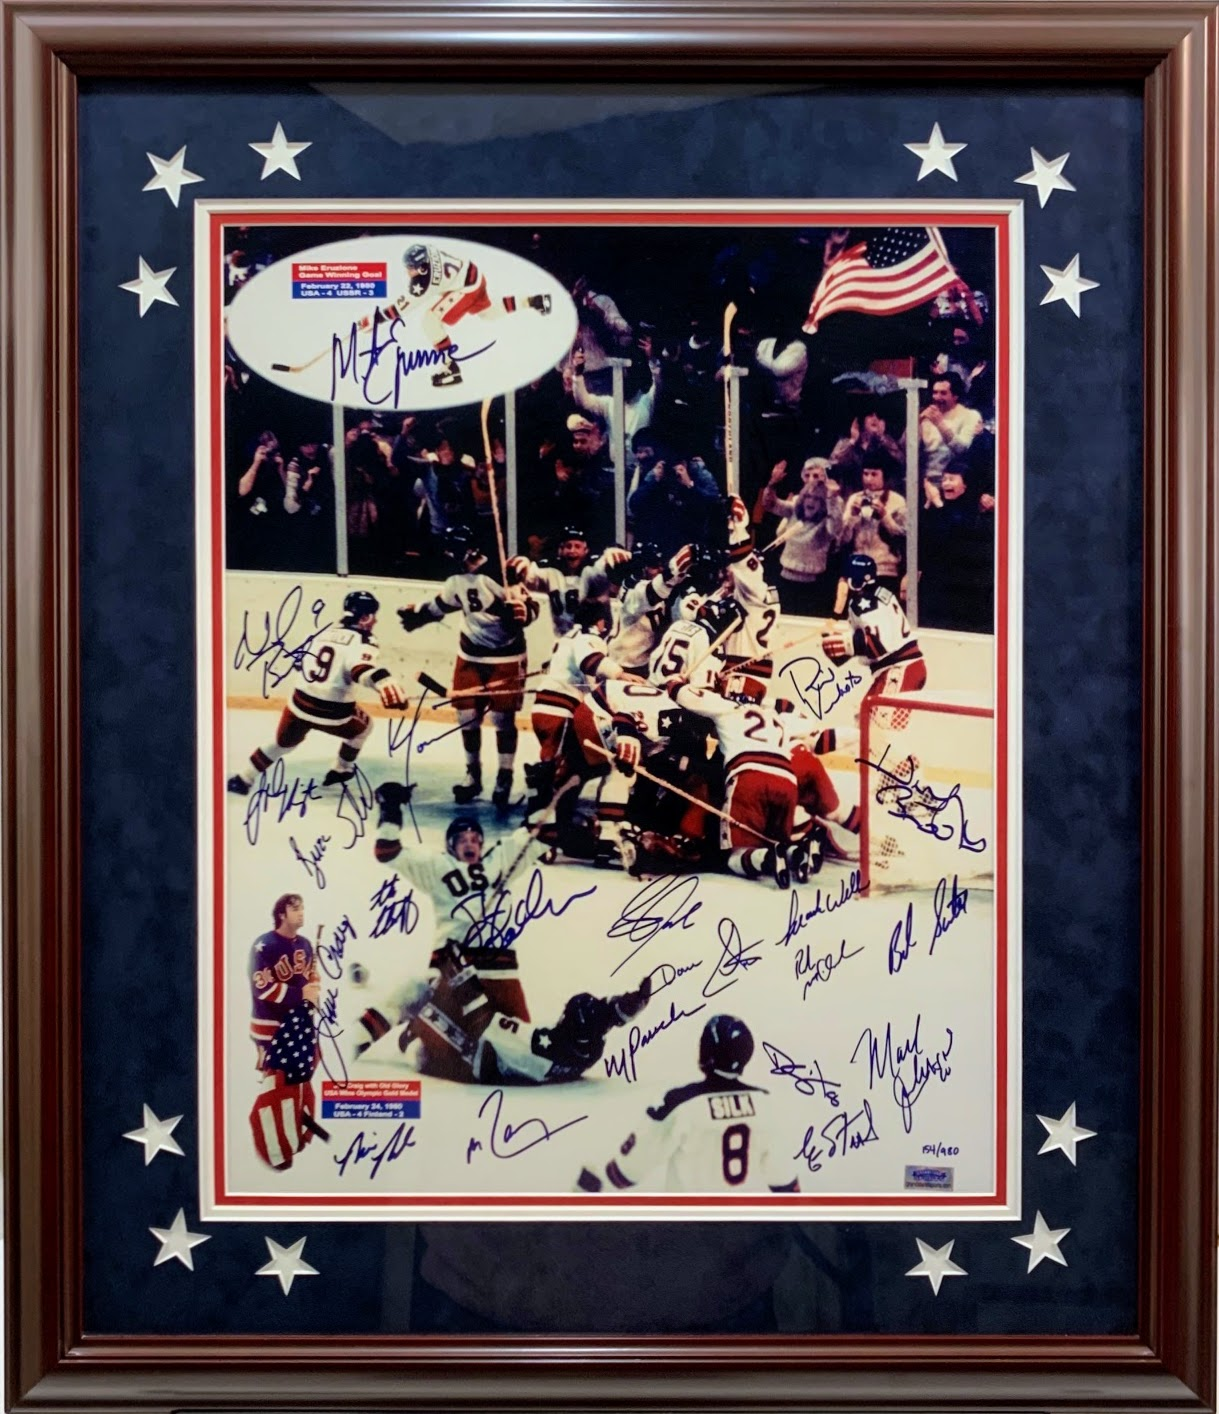 Miracle on Ice USA Team Signed 16x20 Photo w/ Herb Brooks - Grandstand Hologram LTD ED #154/980